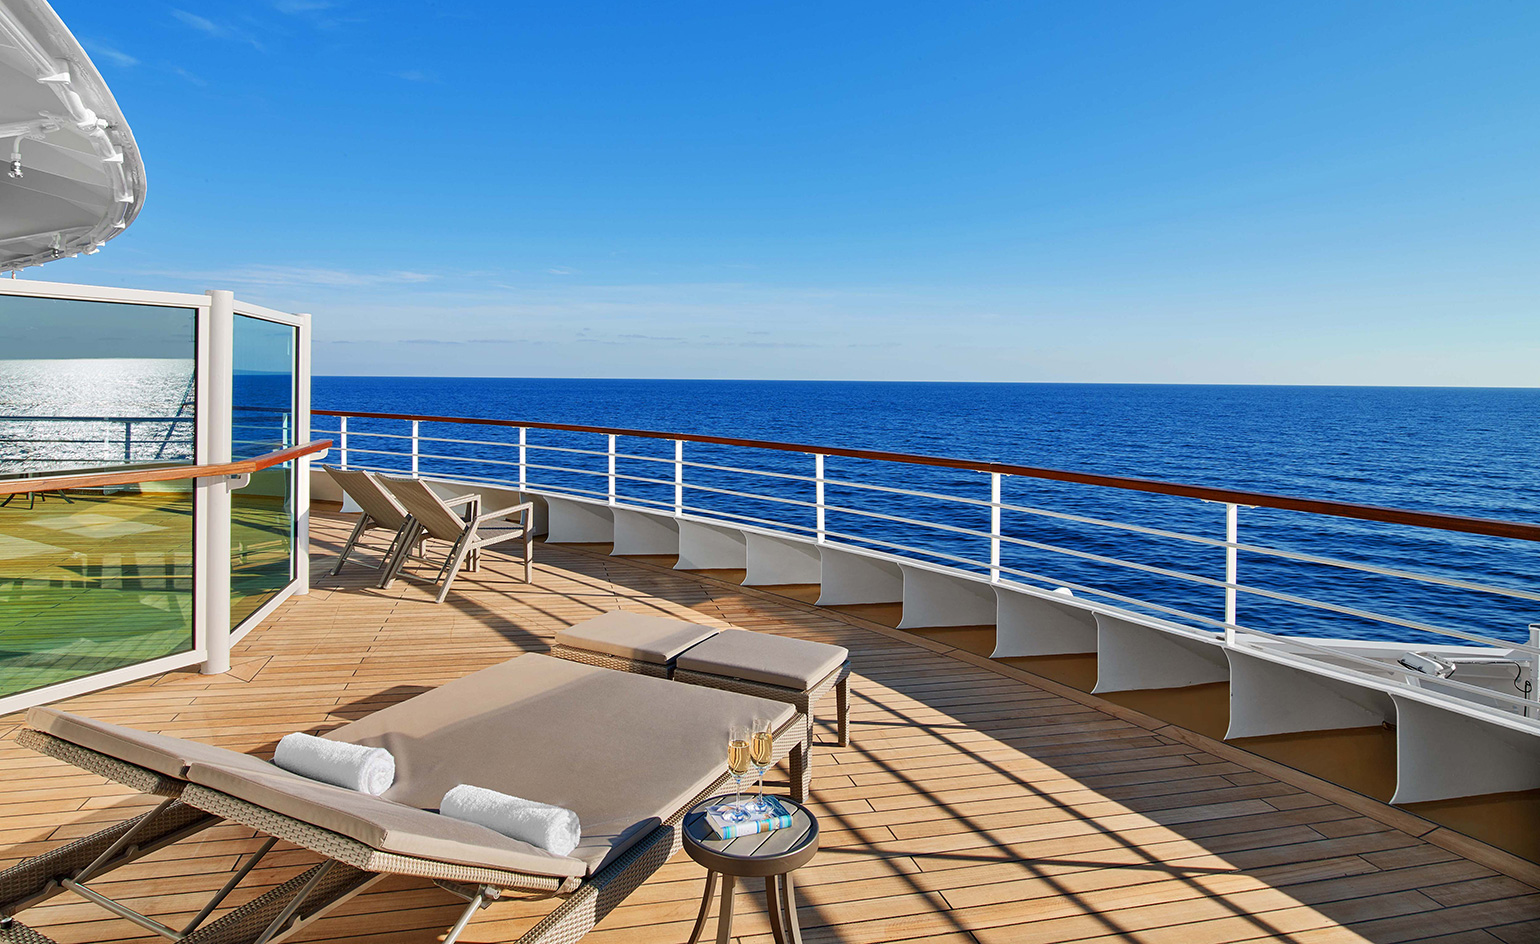 Ship shape: luxury cruise line Seabourn launches the Encore ...